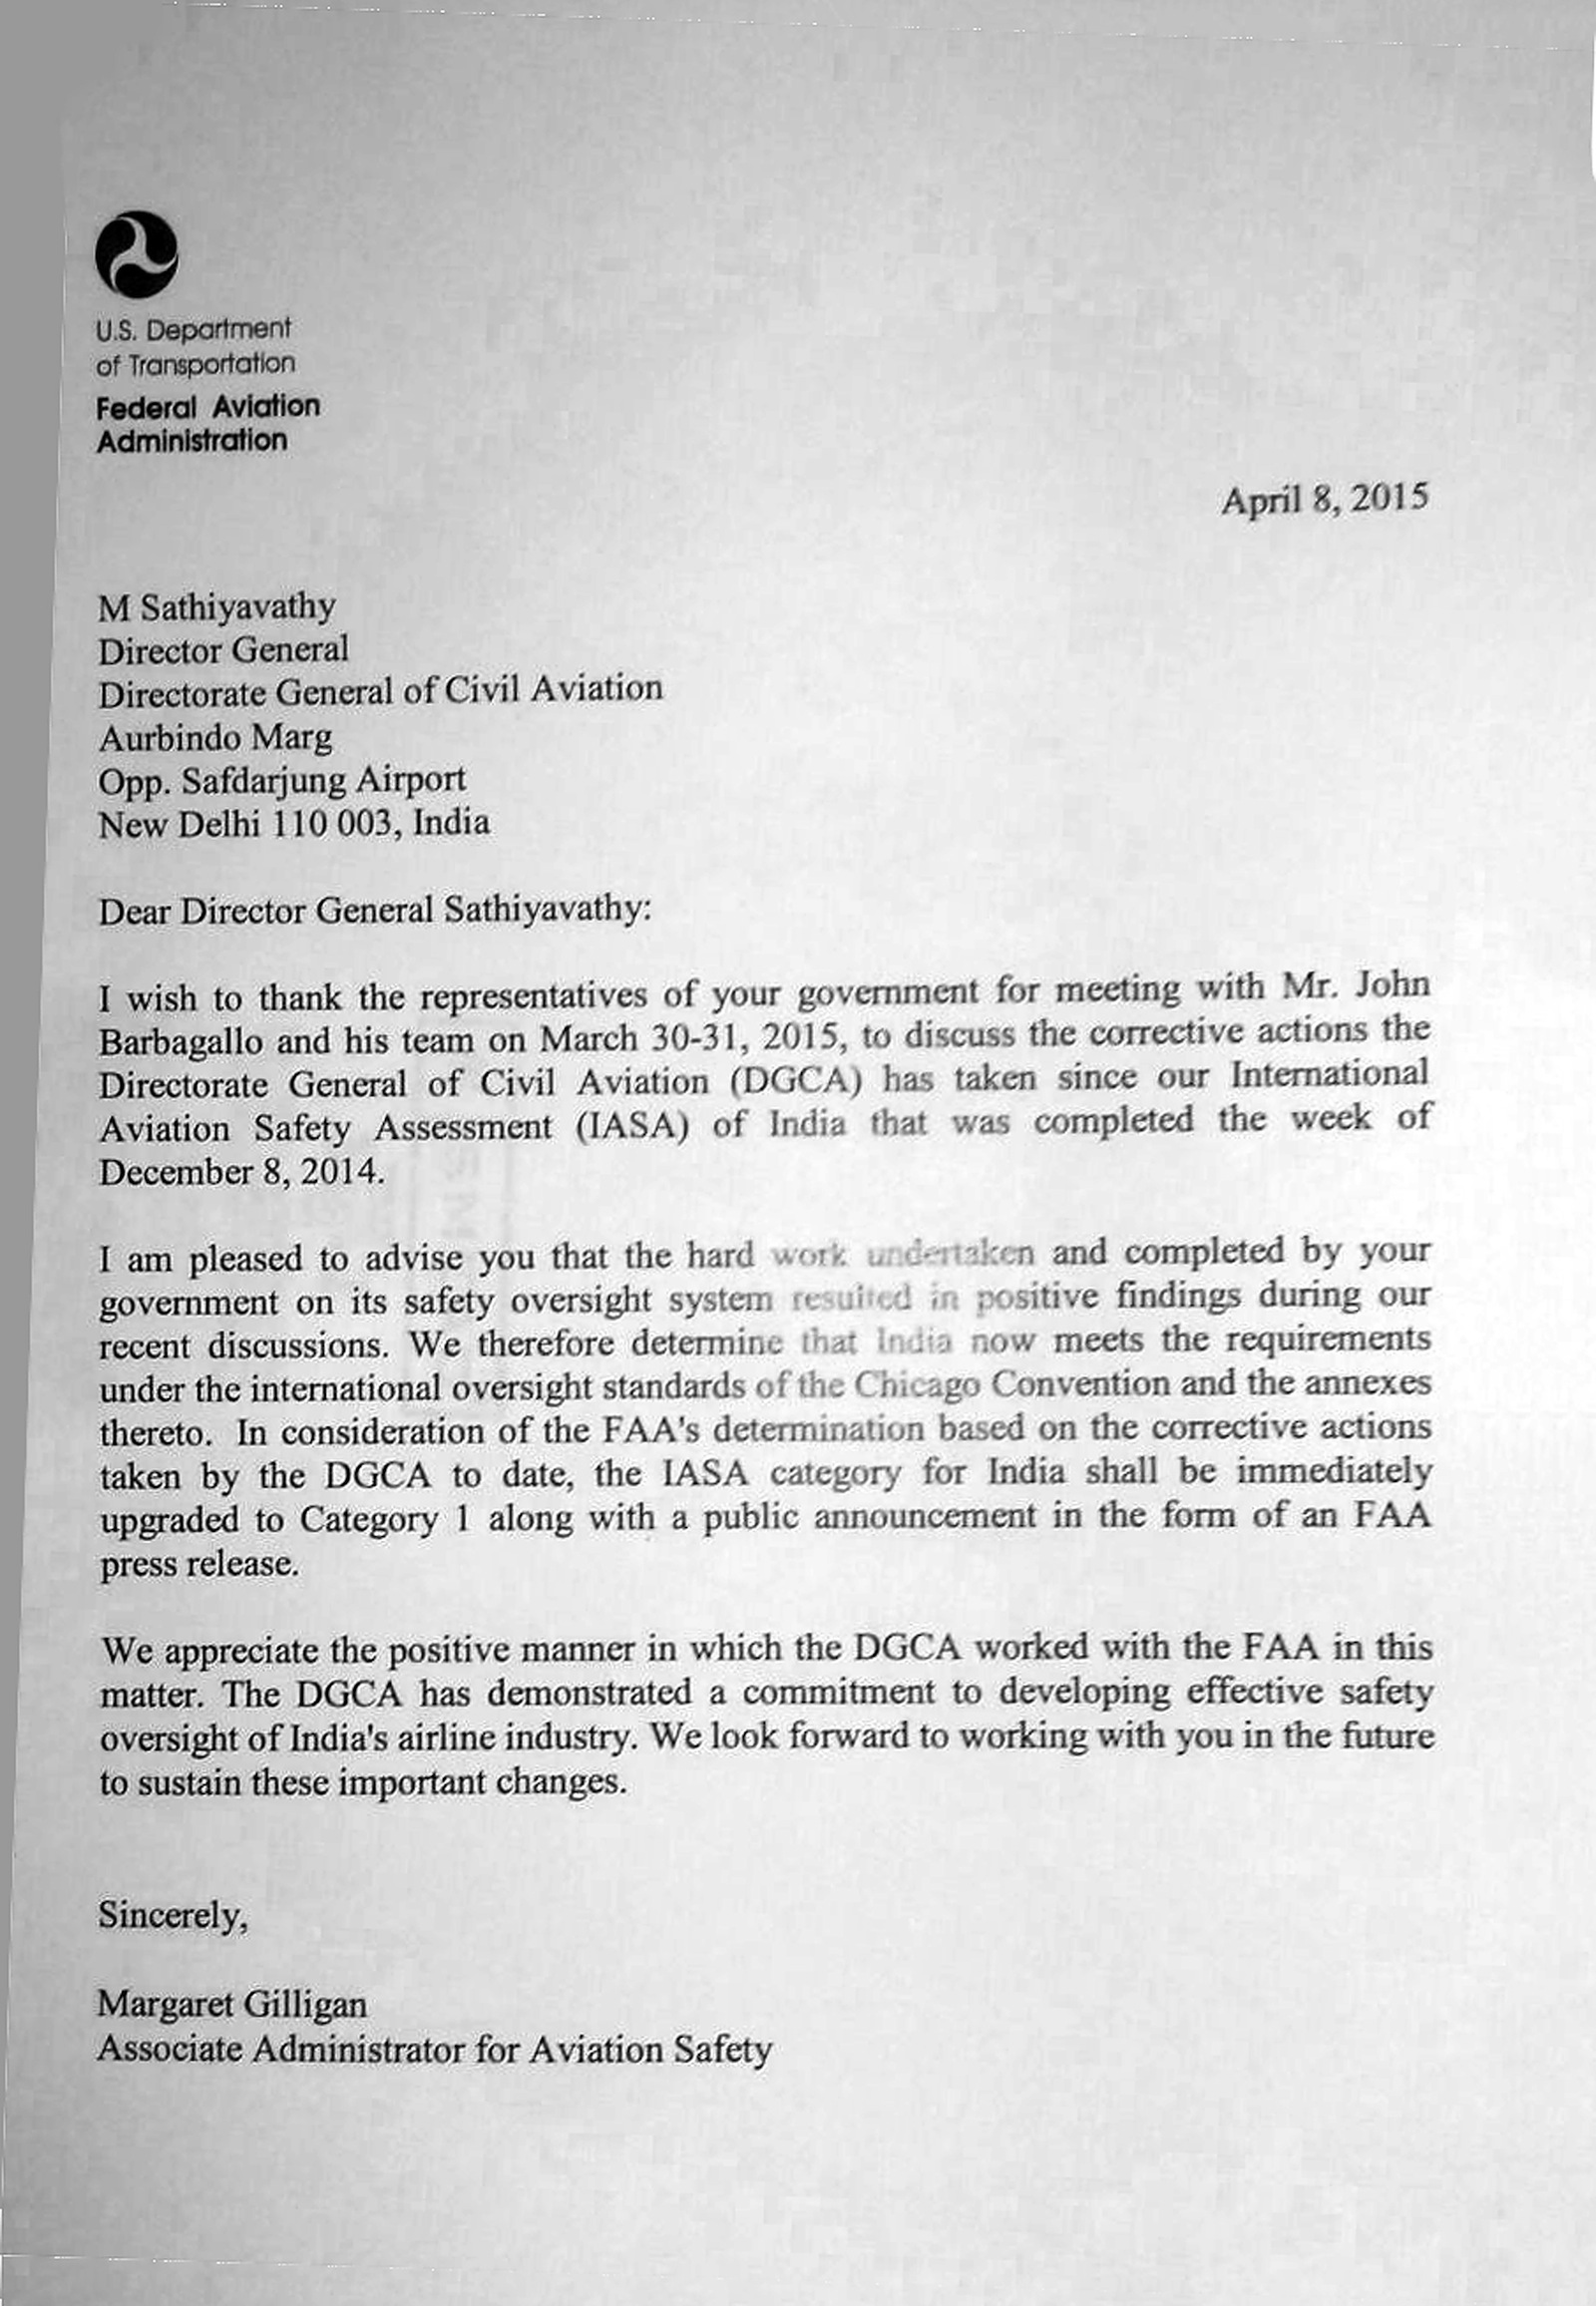 Letter From FAA To DGCA Announcing Upgrade Category 1